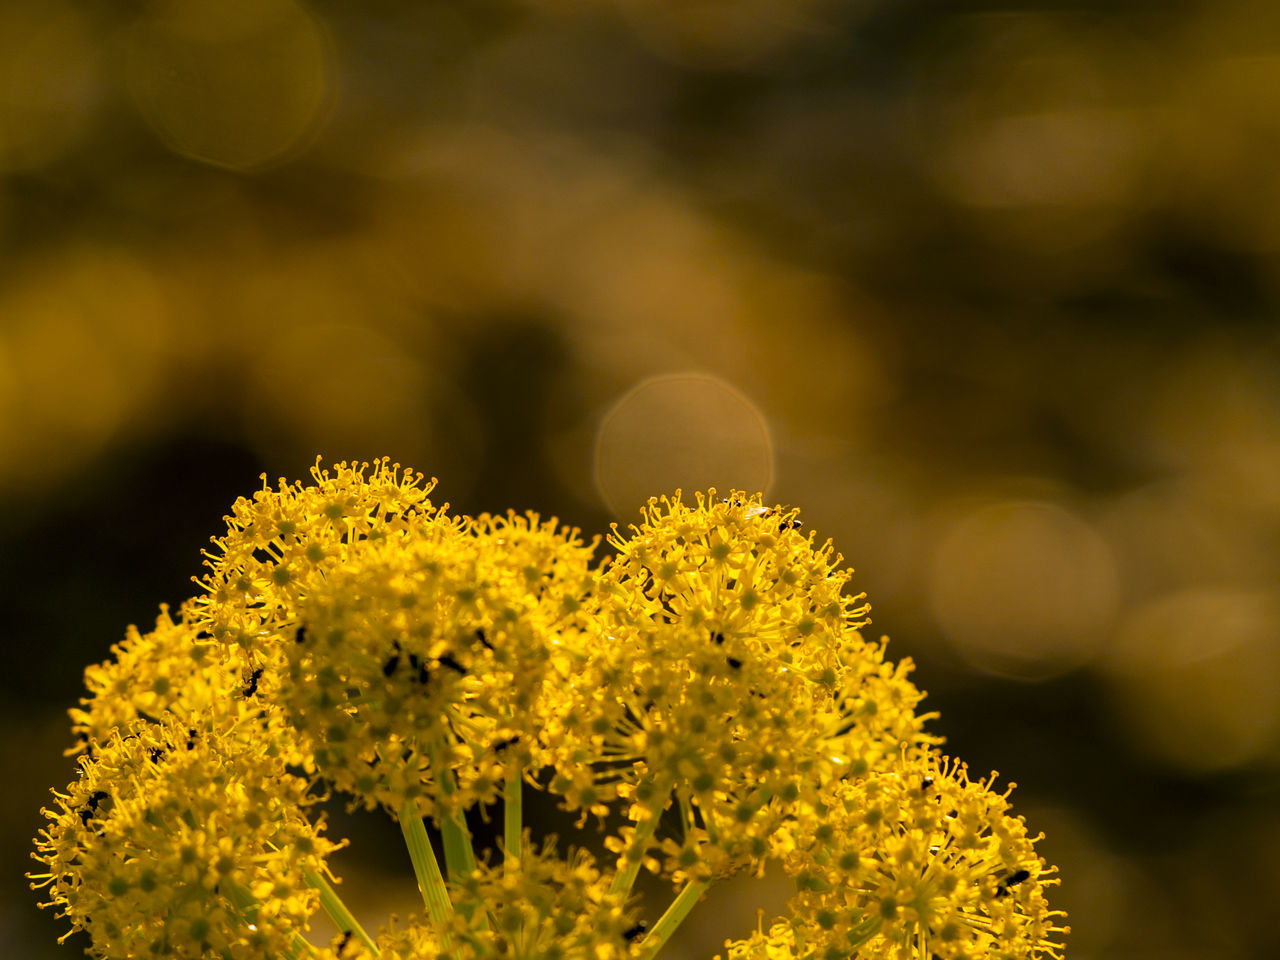 Copy Space Thapsia Thapsia Villosa Beauty In Nature Blooming Close-up Deadly Carrots Flower Flower Head Flowerporn Flowers Focus On Foreground Fragility Freshness Growth Nature No People Outdoors Petal Plant Space For Copy Space For Text Wild Flowers Wild Plants Yellow Paint The Town Yellow